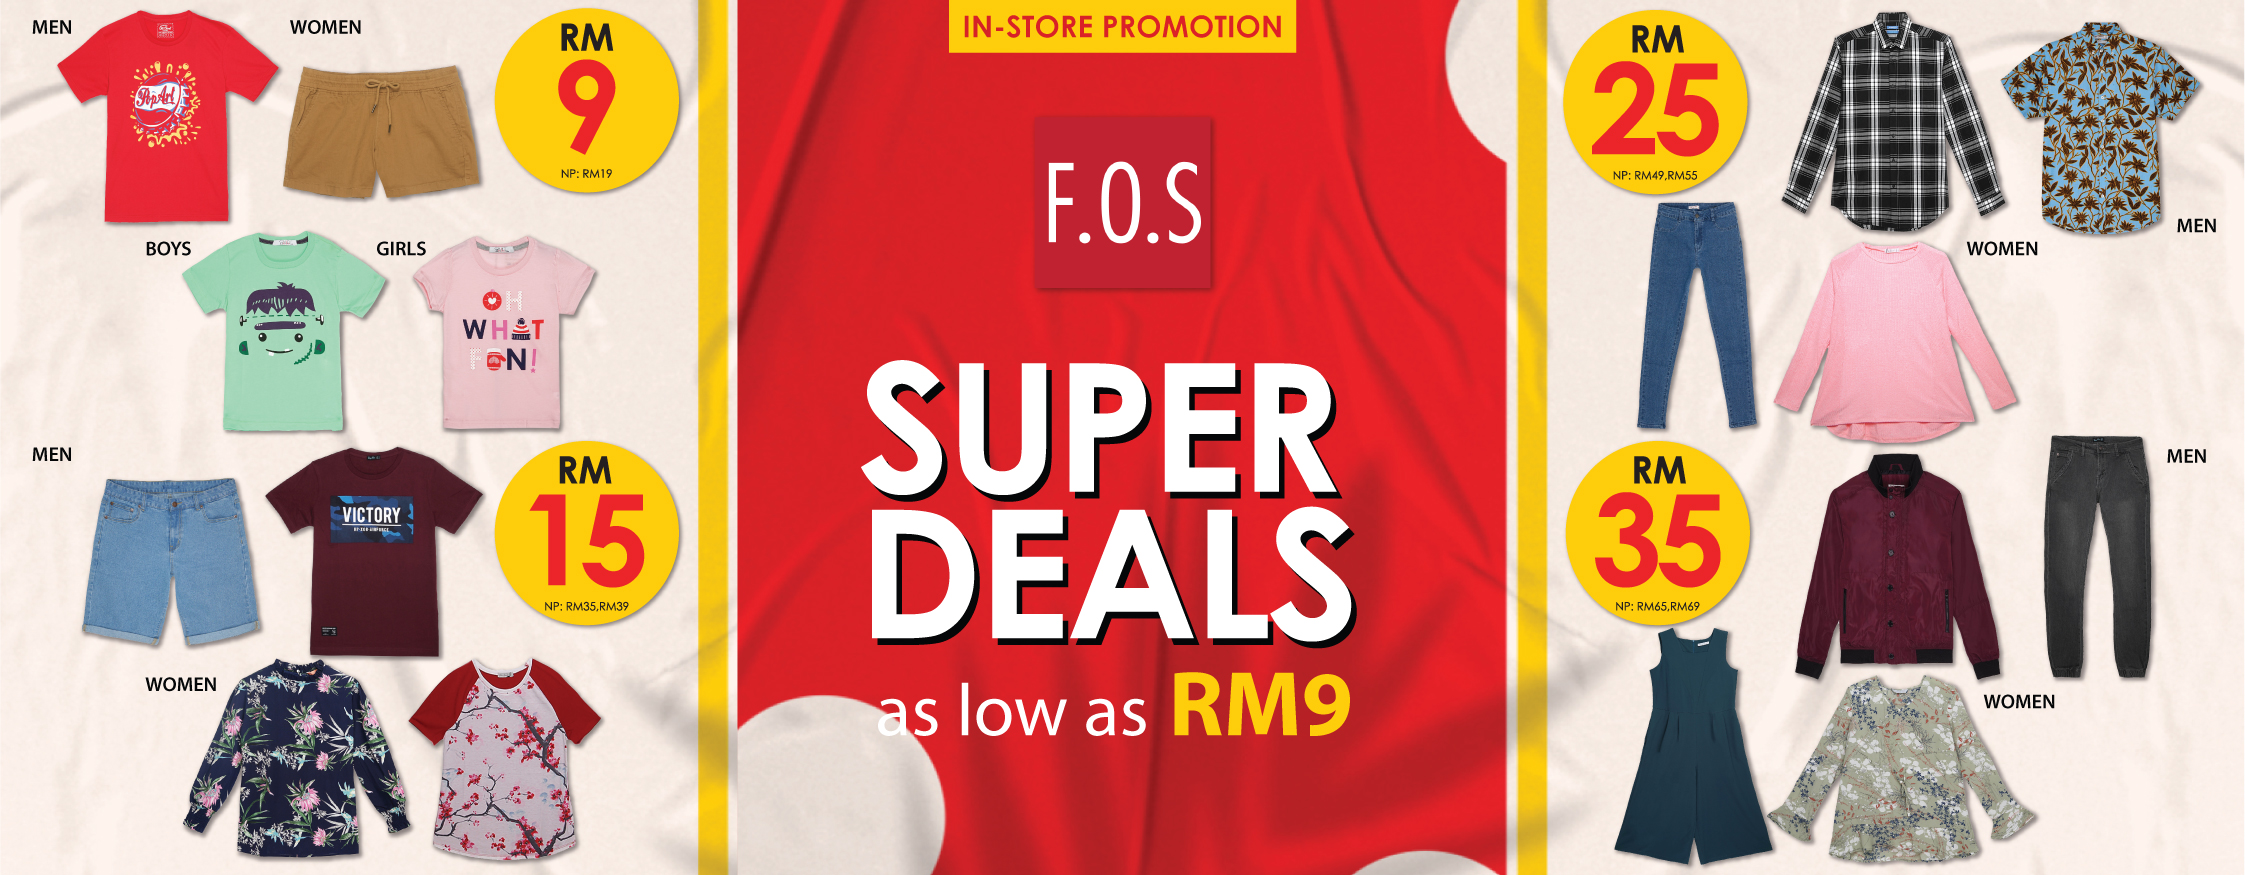 TOP-BANNER-super-deals